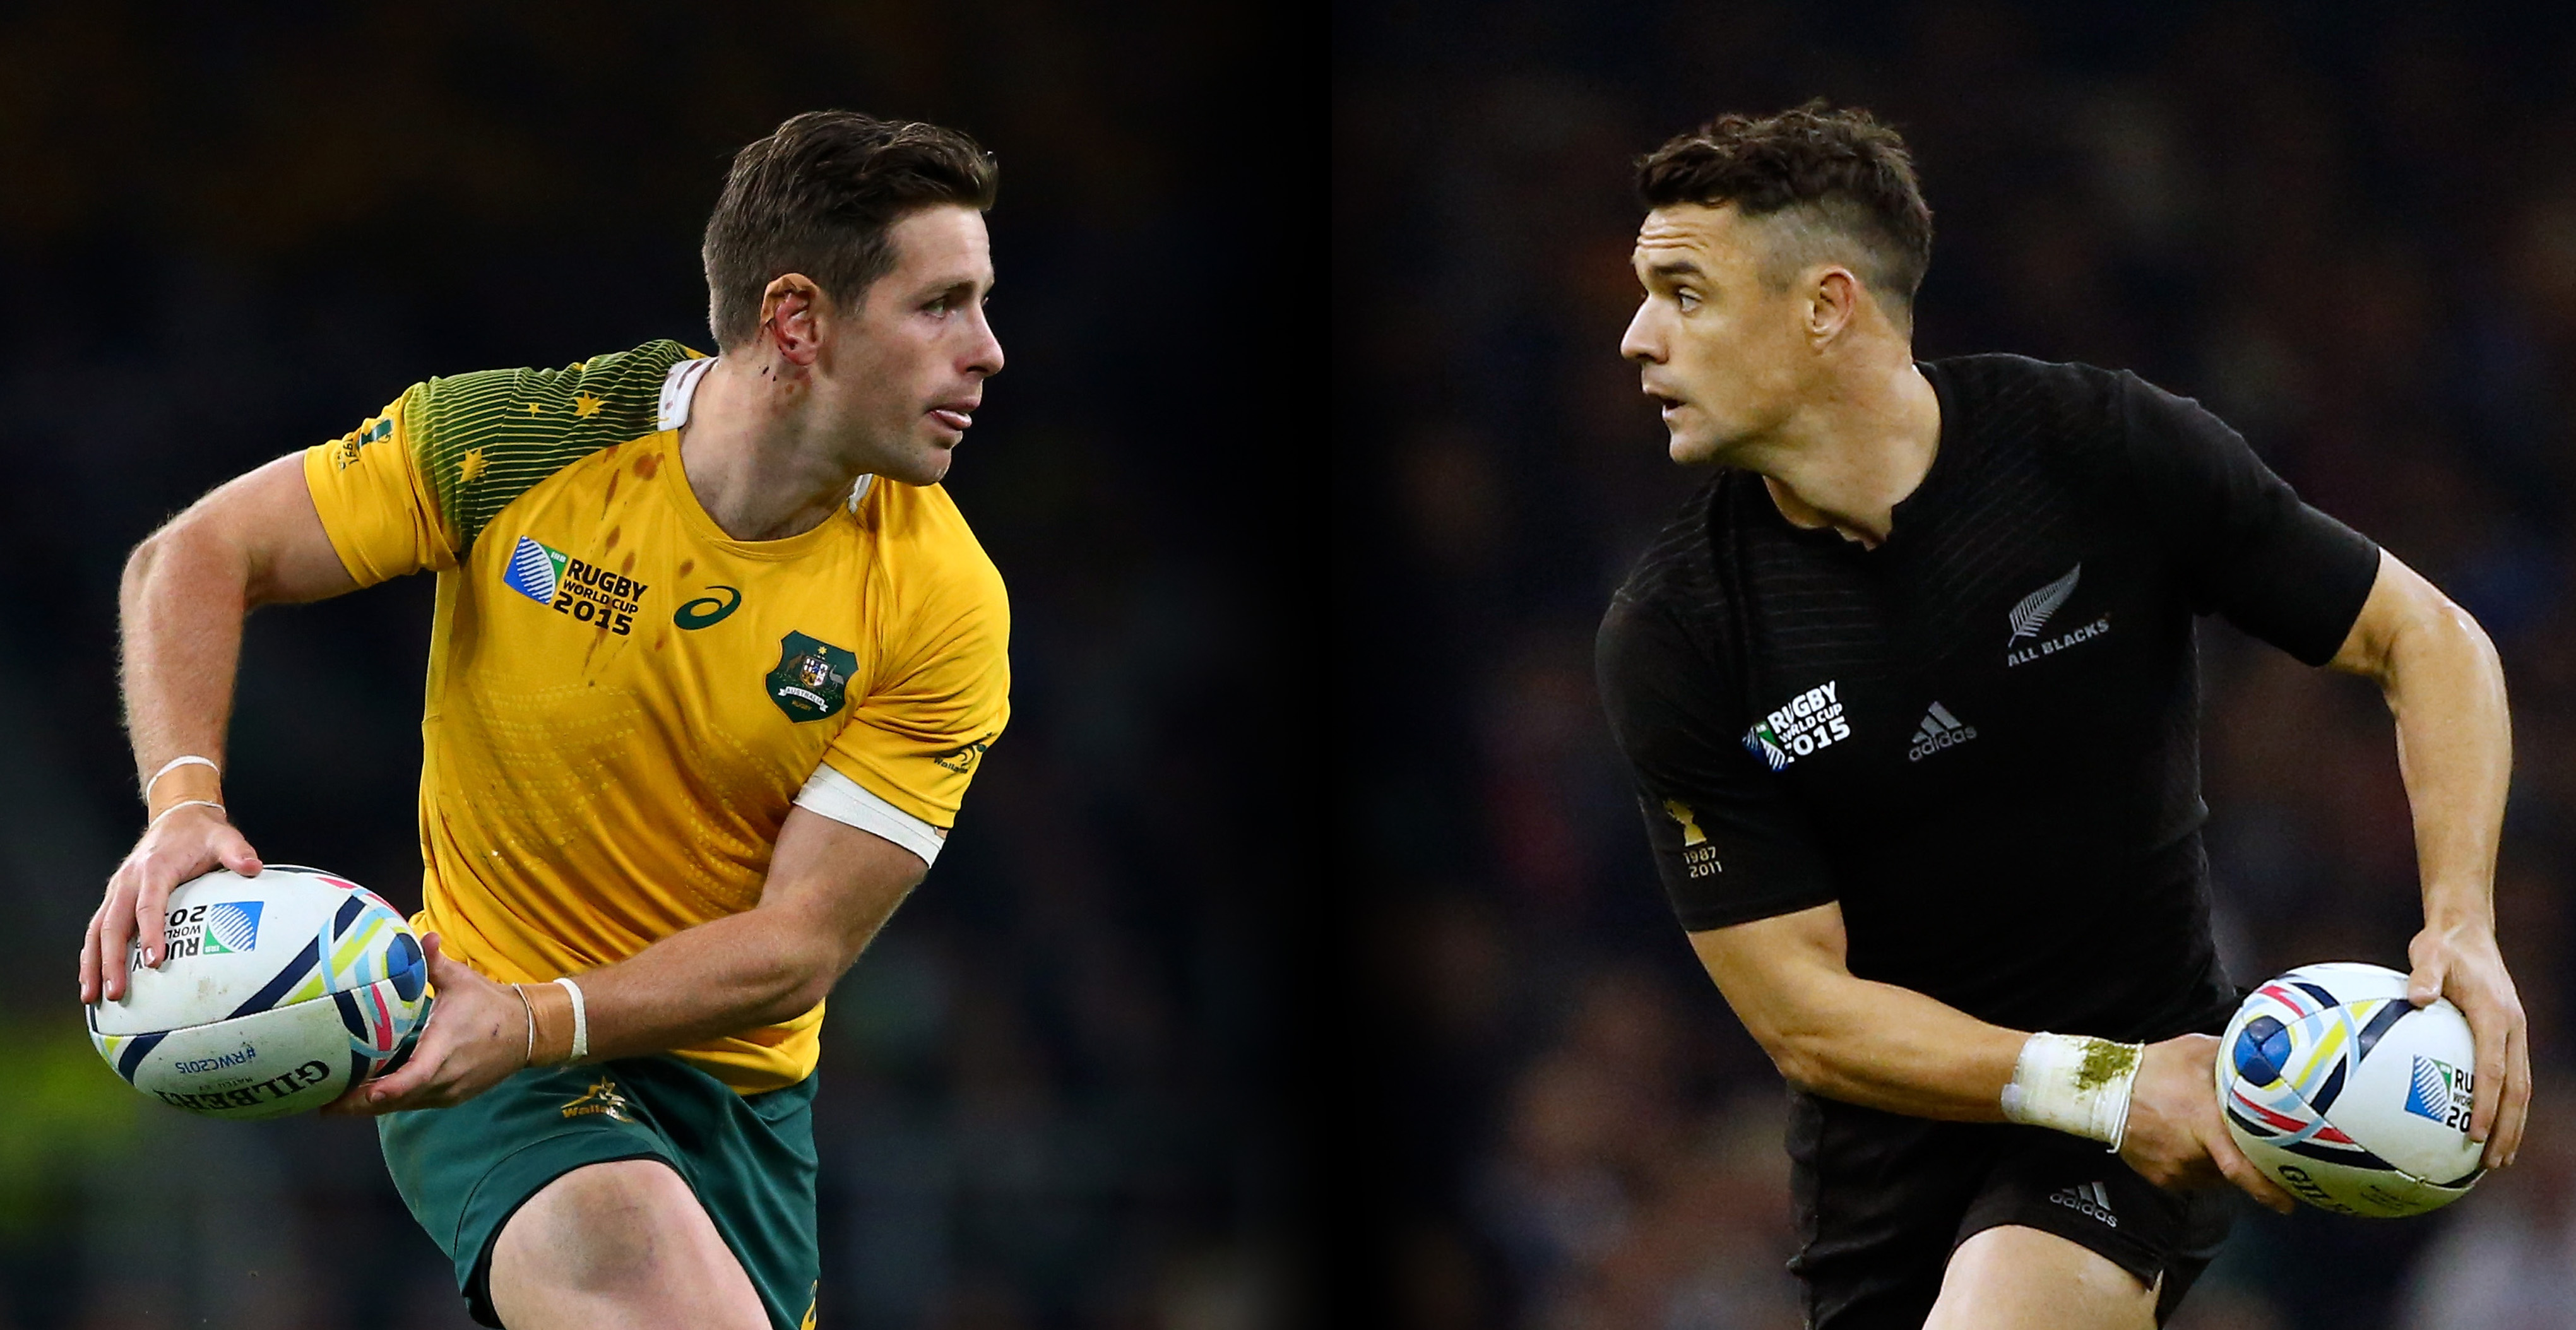 New Zealand rugby team have hotel room bugged ahead of Australia match